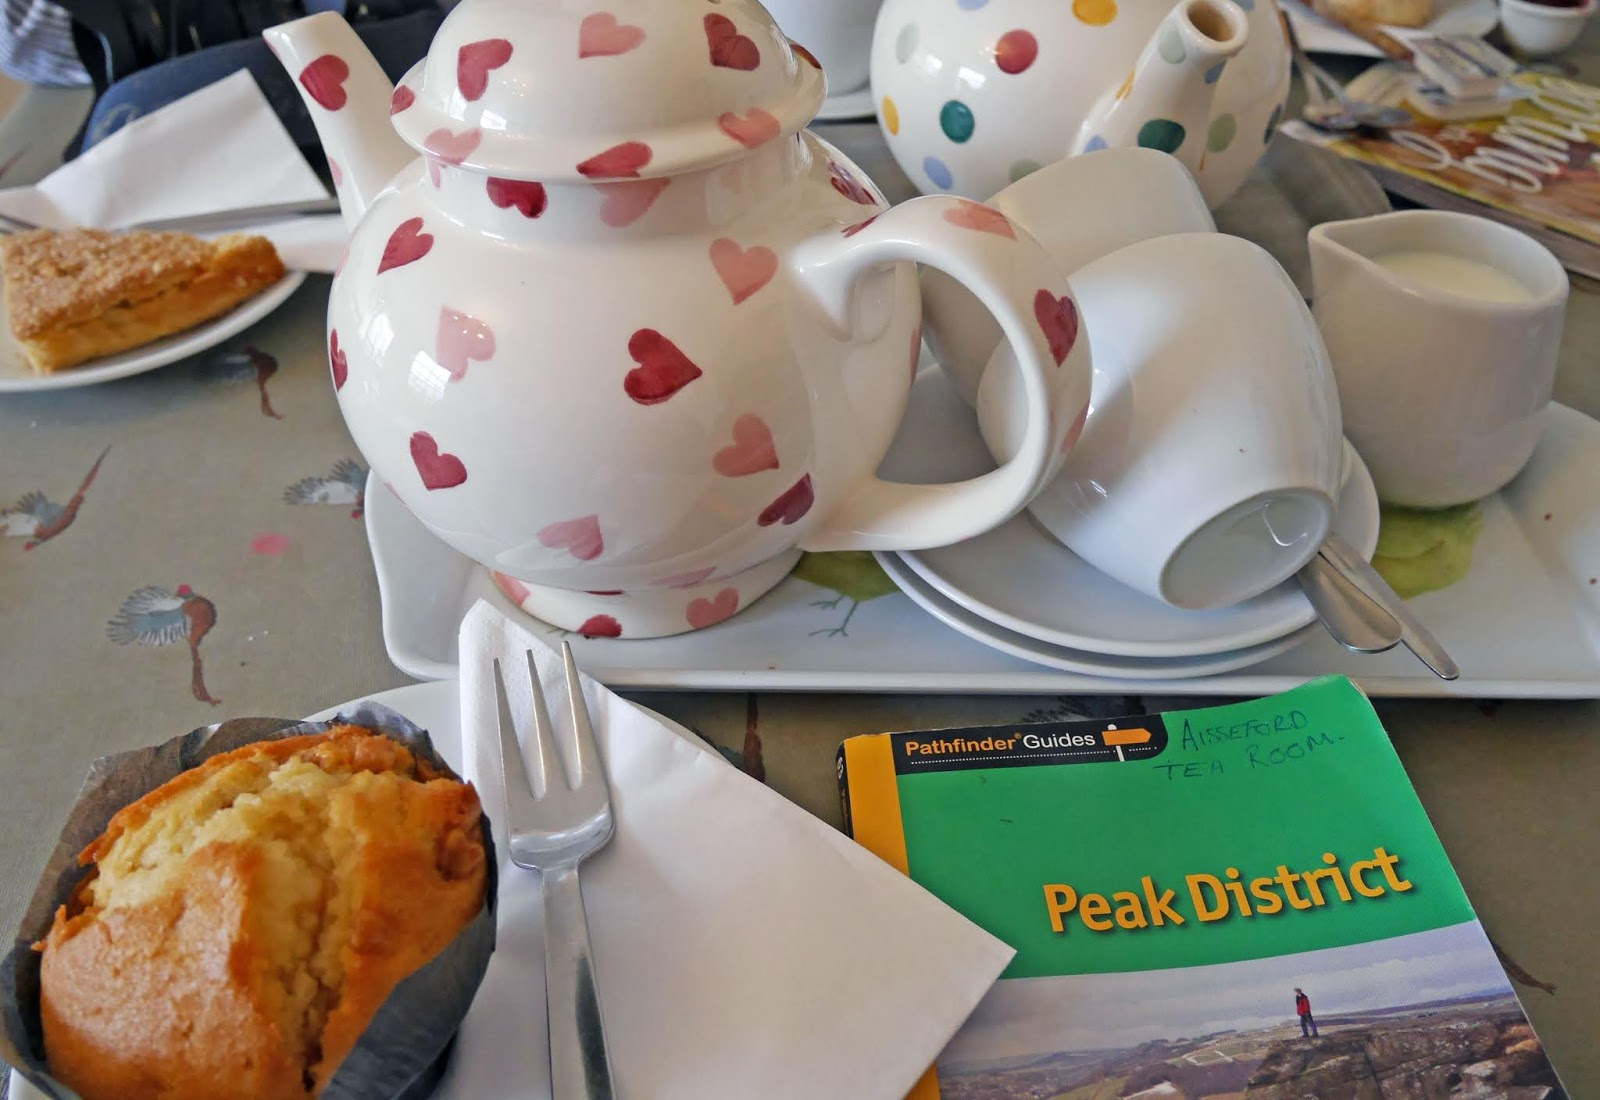 Tea and cake at the Aisseford Tea Room, Ashford-in-the-water (Peak District National Park)